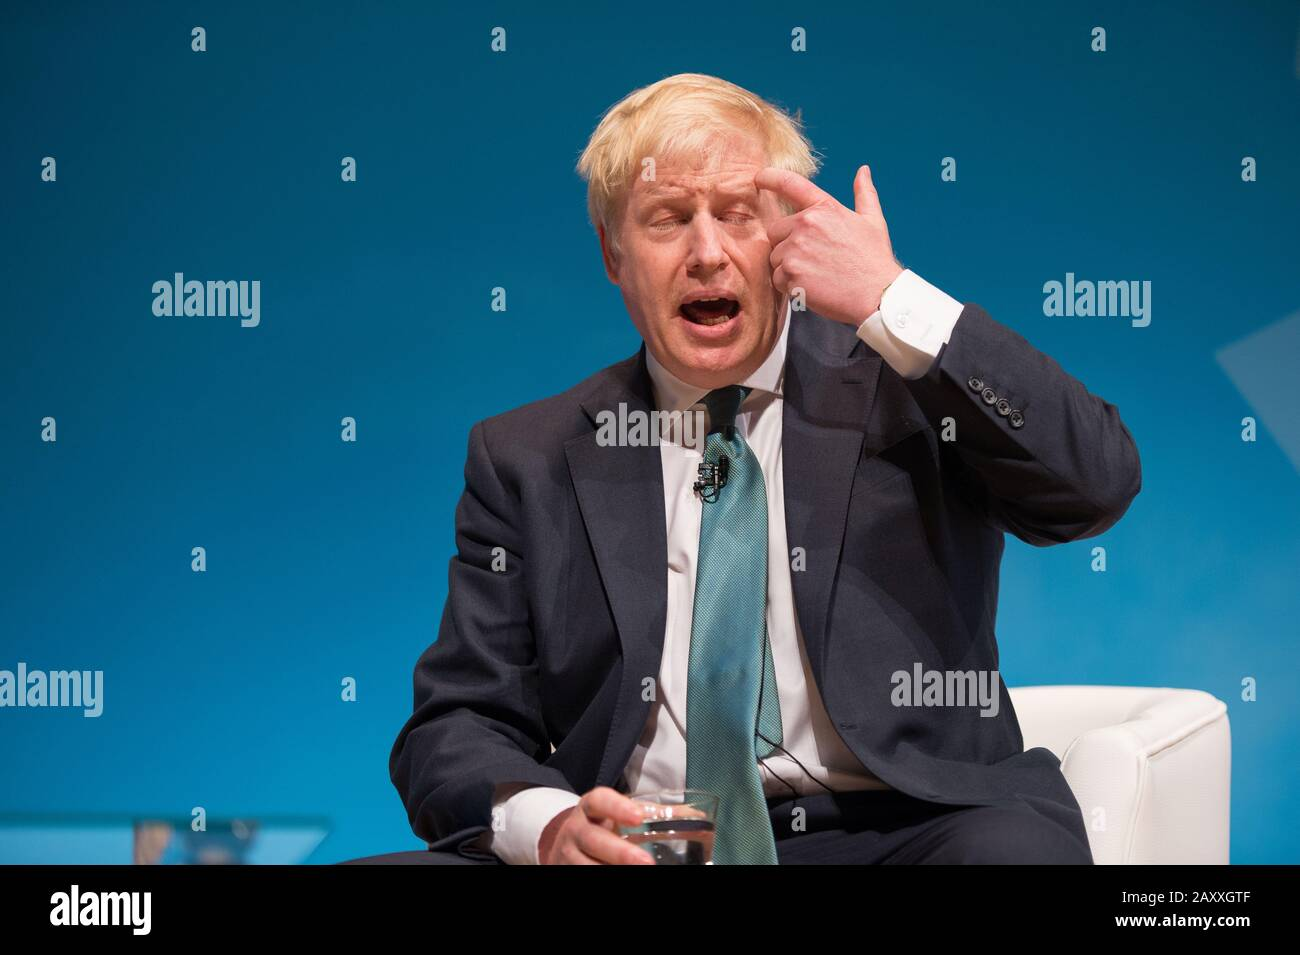 Perth, UK. 5 July 2019.  PICTURED: Boris Johnson MP Conservative leadership contenders Boris Johnson and Jeremy Hunt are to face Scottish party members at a hustings event in Perth.  The hustings in Perth is the latest in a series of events around the UK which see the two candidates make a speech to local members before taking questions from a host and the audience.  Party members should receive their ballots in the coming days, with the winner to be announced on 23 July. Credit: Colin Fisher/Alamy Live News Stock Photo